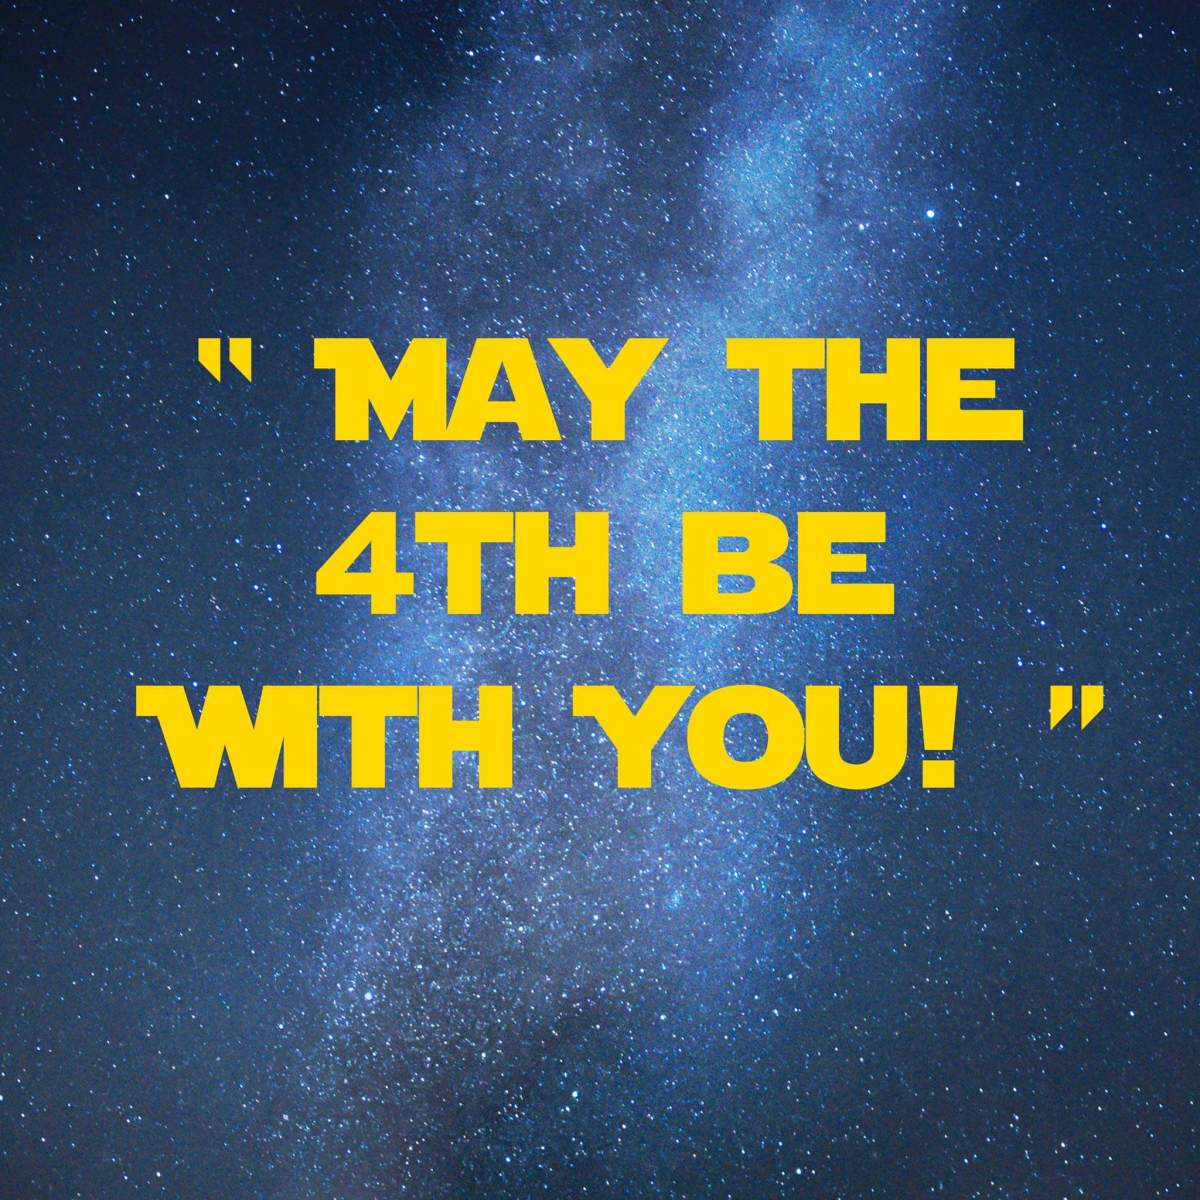 May-the-4th-be-with-you | 31 Memorable Star Wars Quotes for Geeks